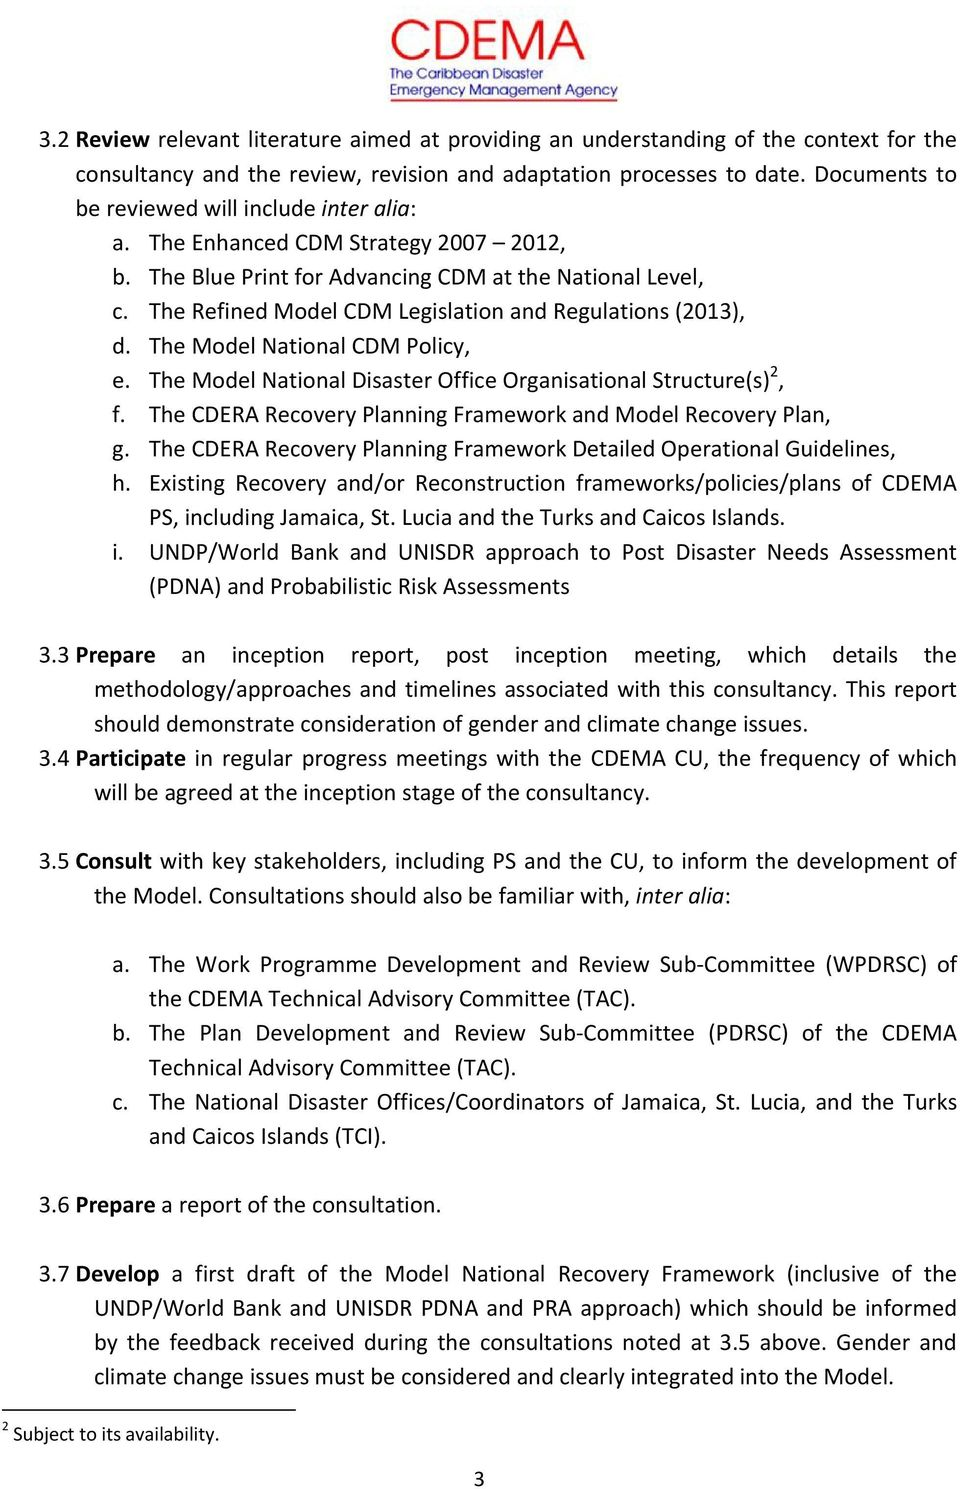 The Refined Model CDM Legislation and Regulations (2013), d. The Model National CDM Policy, e. The Model National Disaster Office Organisational Structure(s) 2, f.